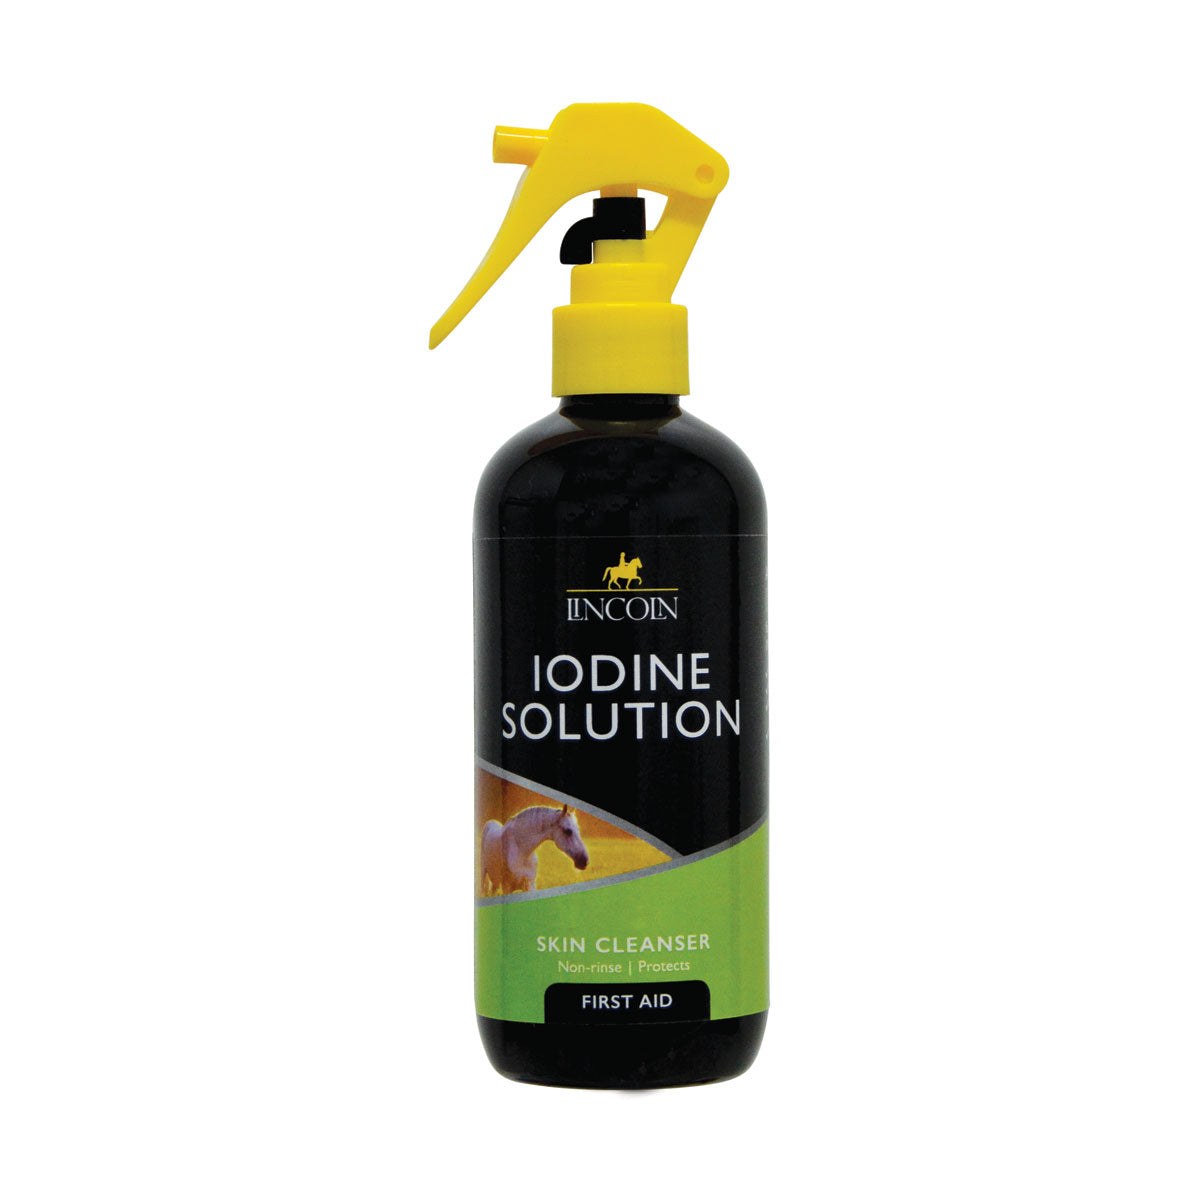 Lincoln Iodine Solution